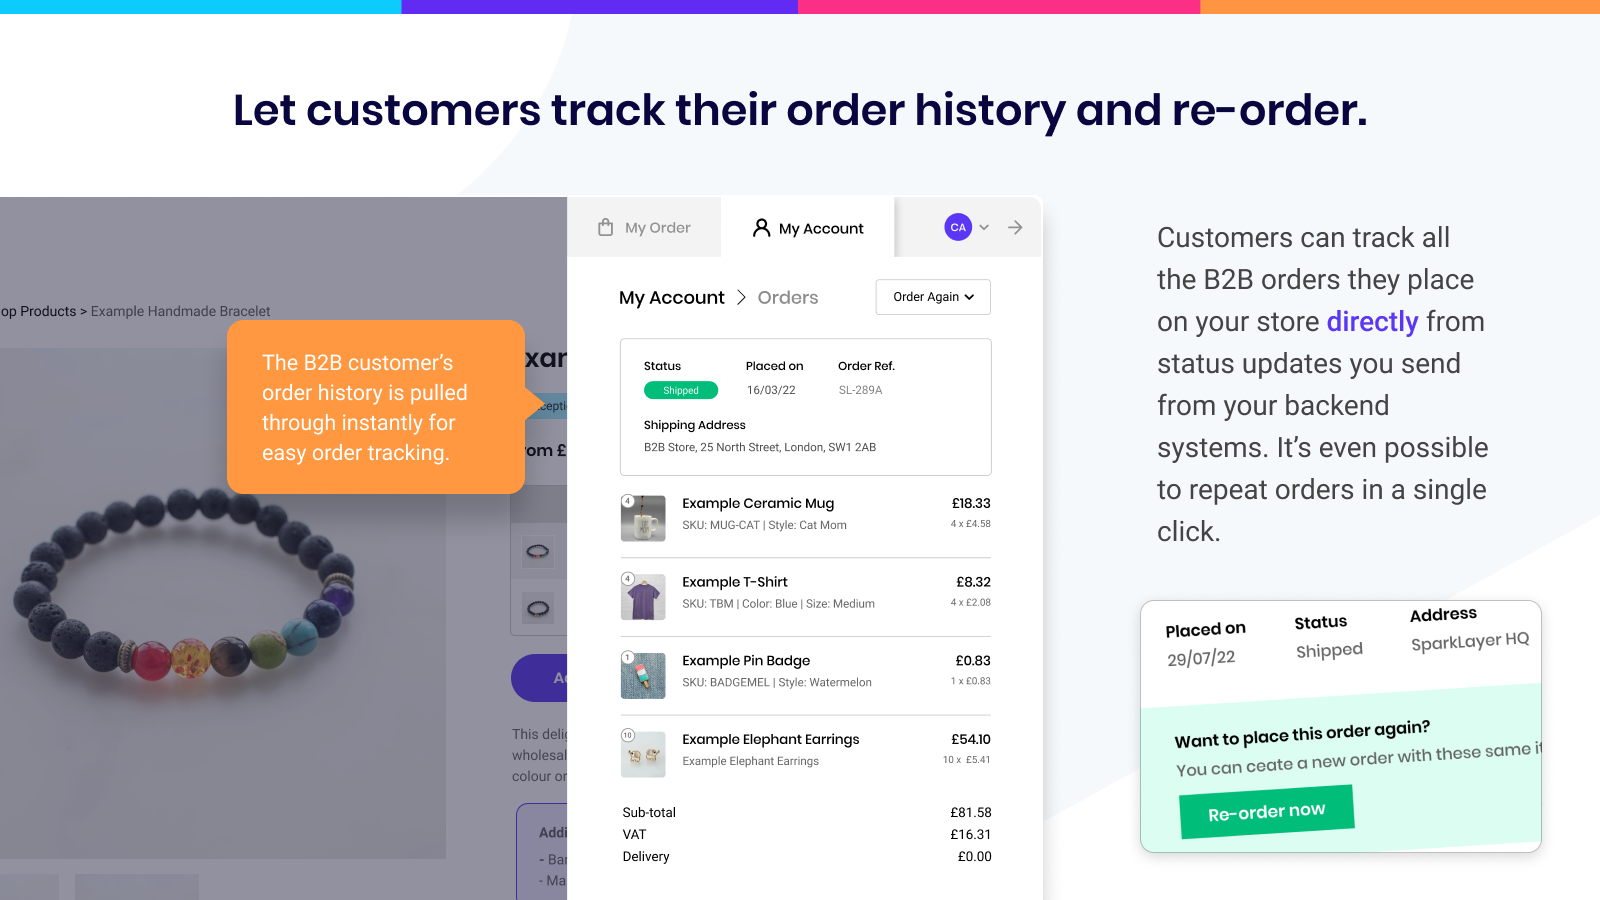 Let customers track their order history and re-order.